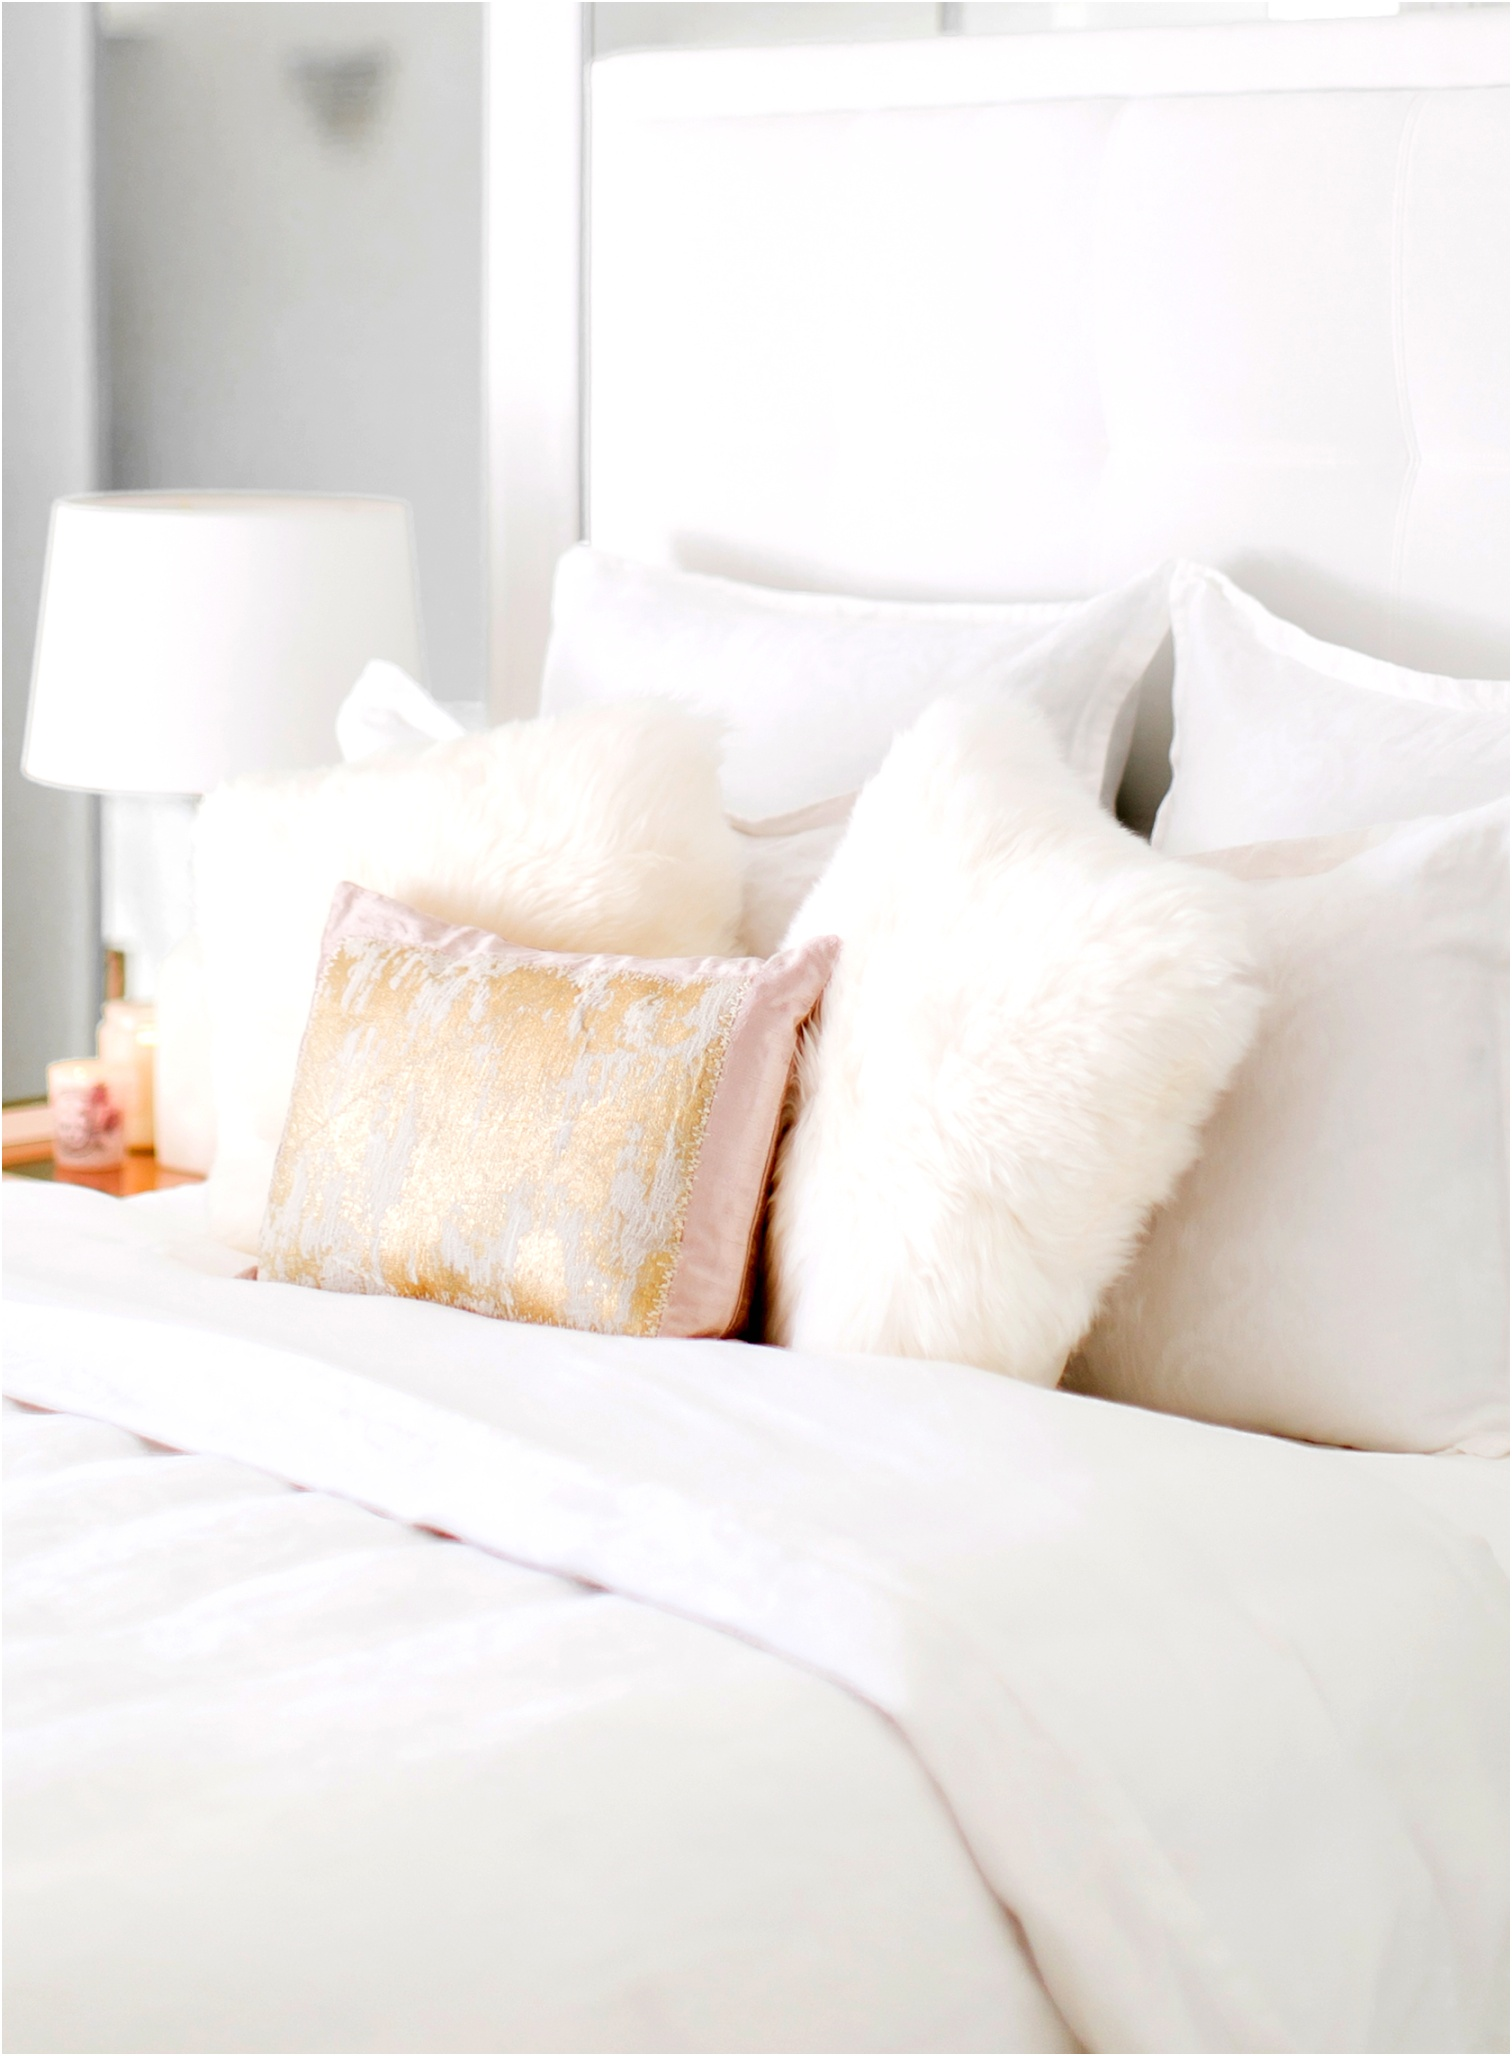 Sydne Style shares bedroom decorating ideas with ugg fluffy pillow and blush gold decorative pillows